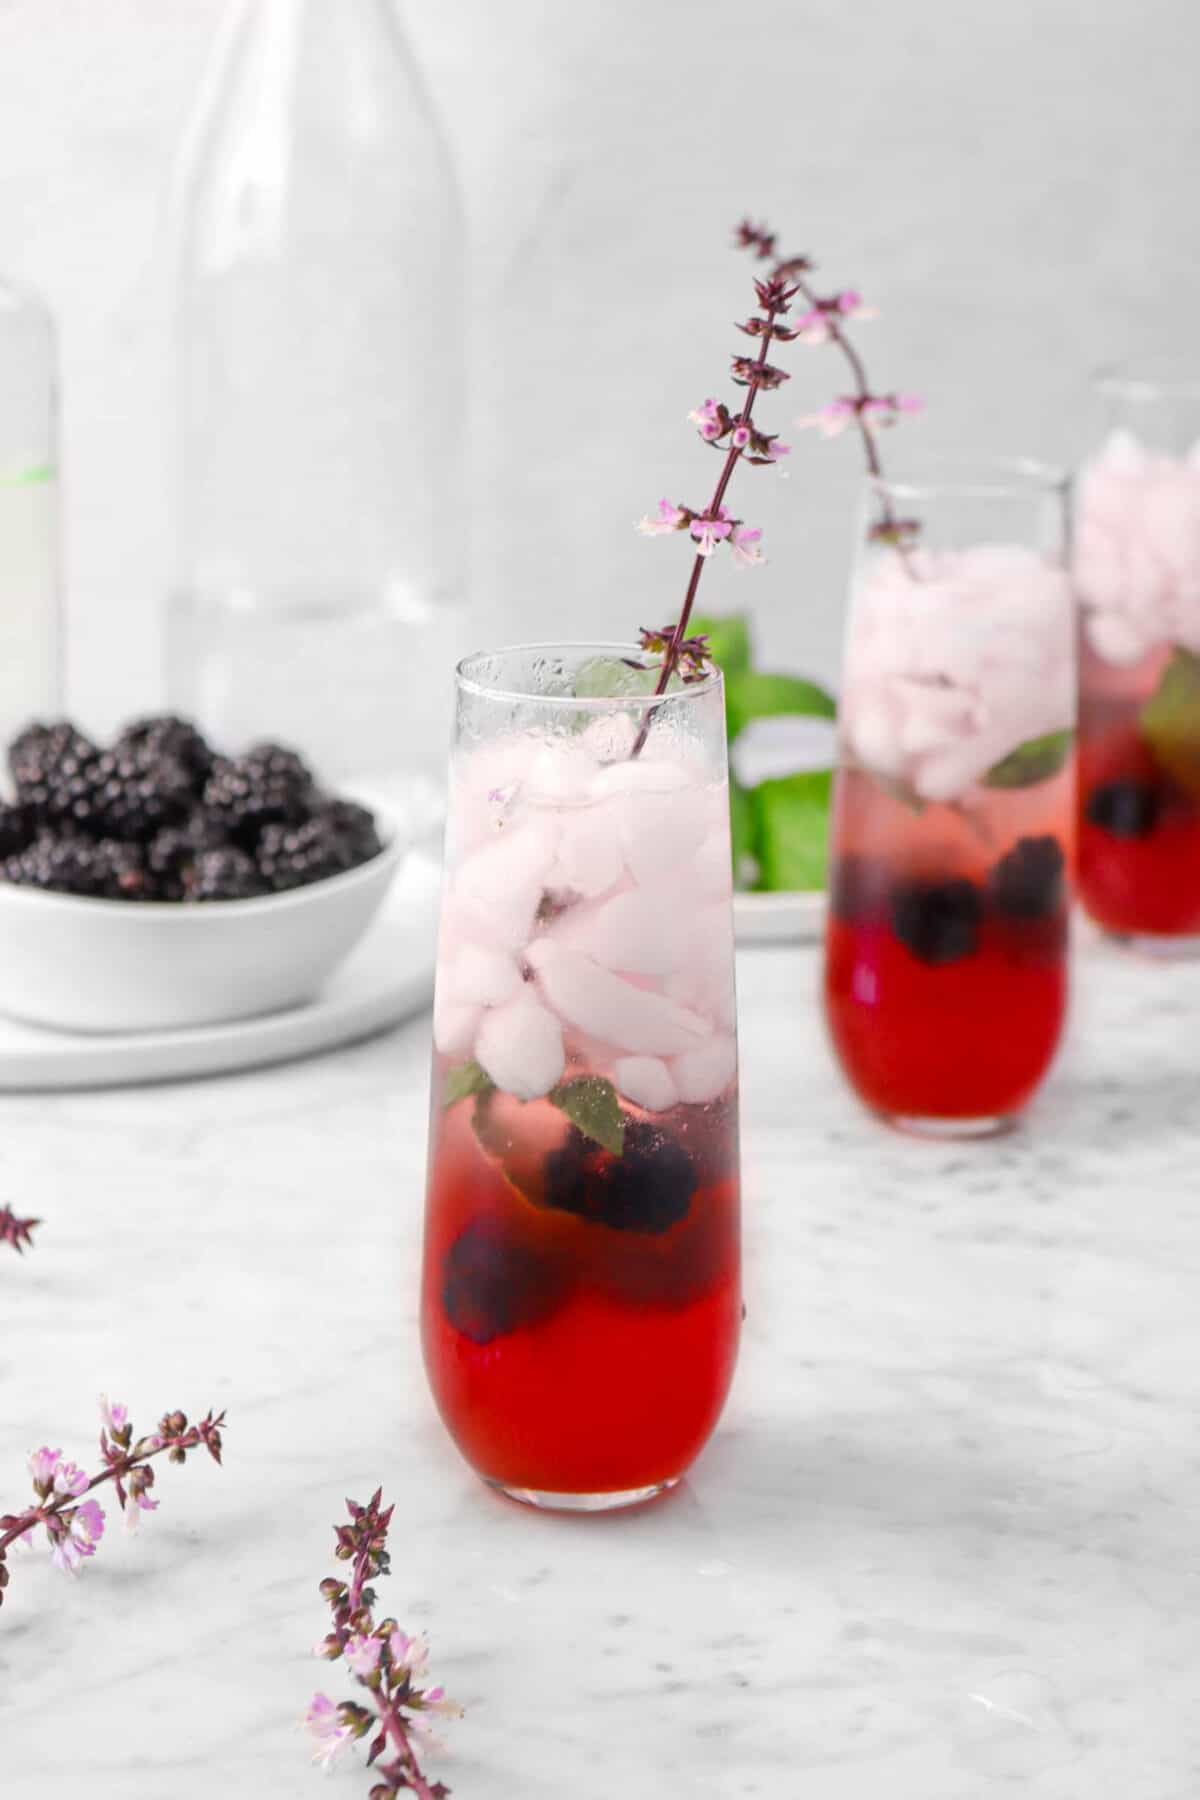 three blackberry mojitos on a marble counter with flowers, blackberries, and mint leaves